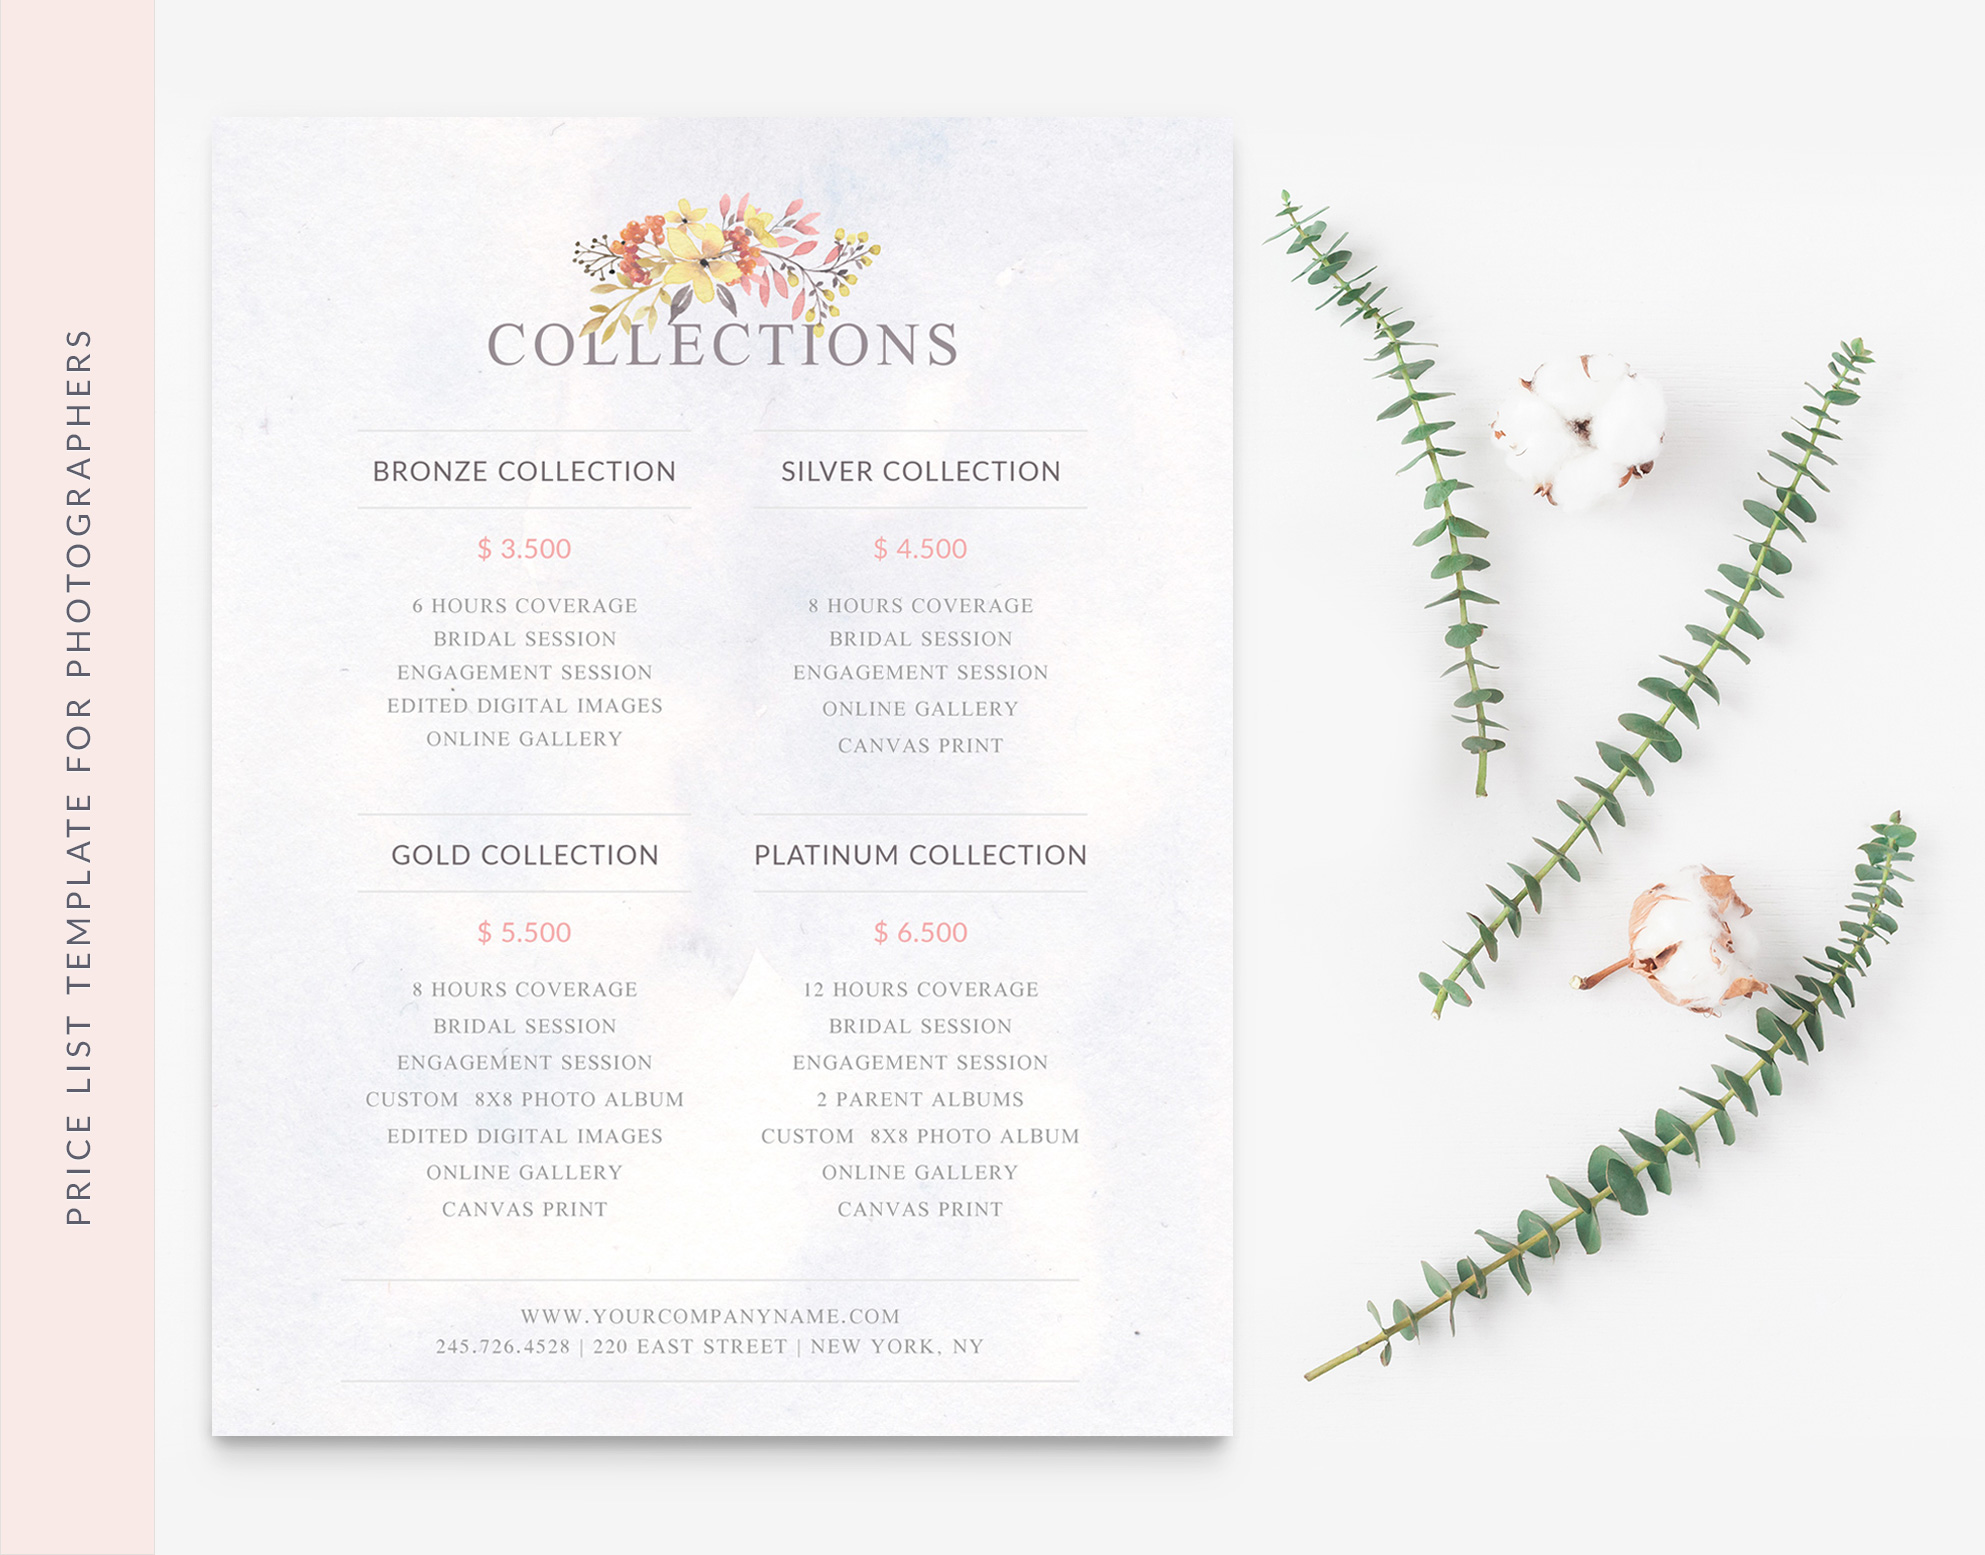 Wedding Photographer Price List Template - Moi Cherie - price list template